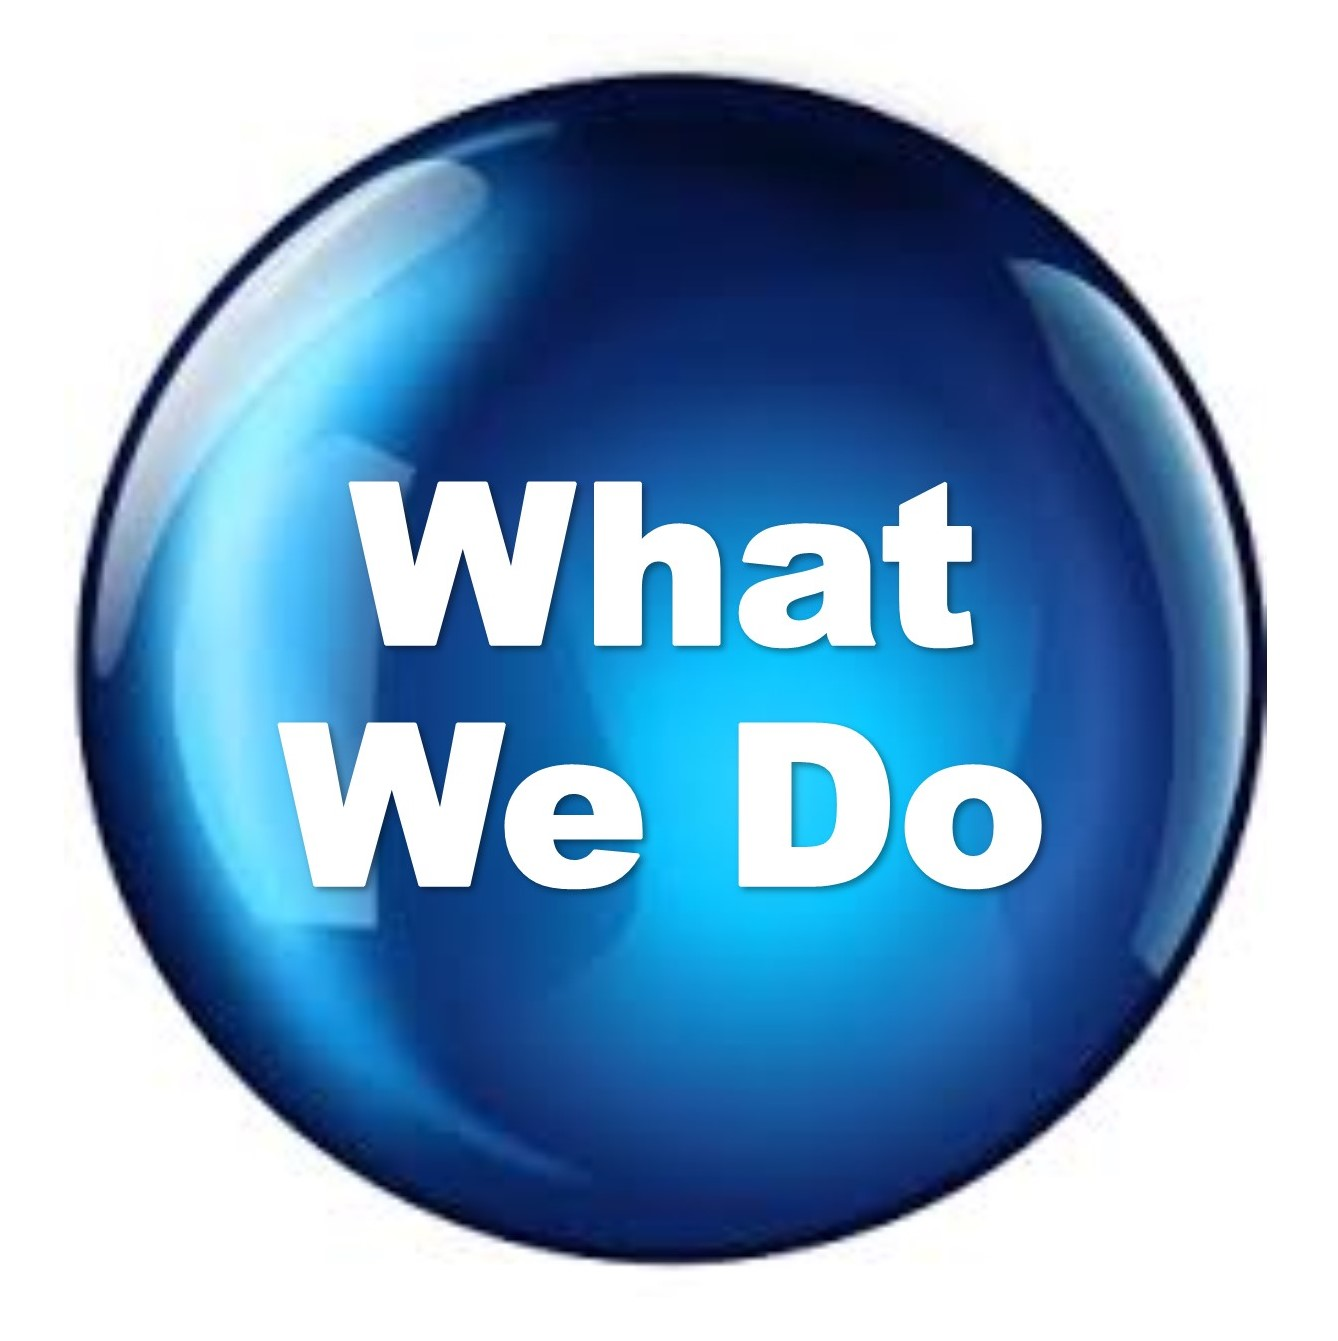 What We Do Button